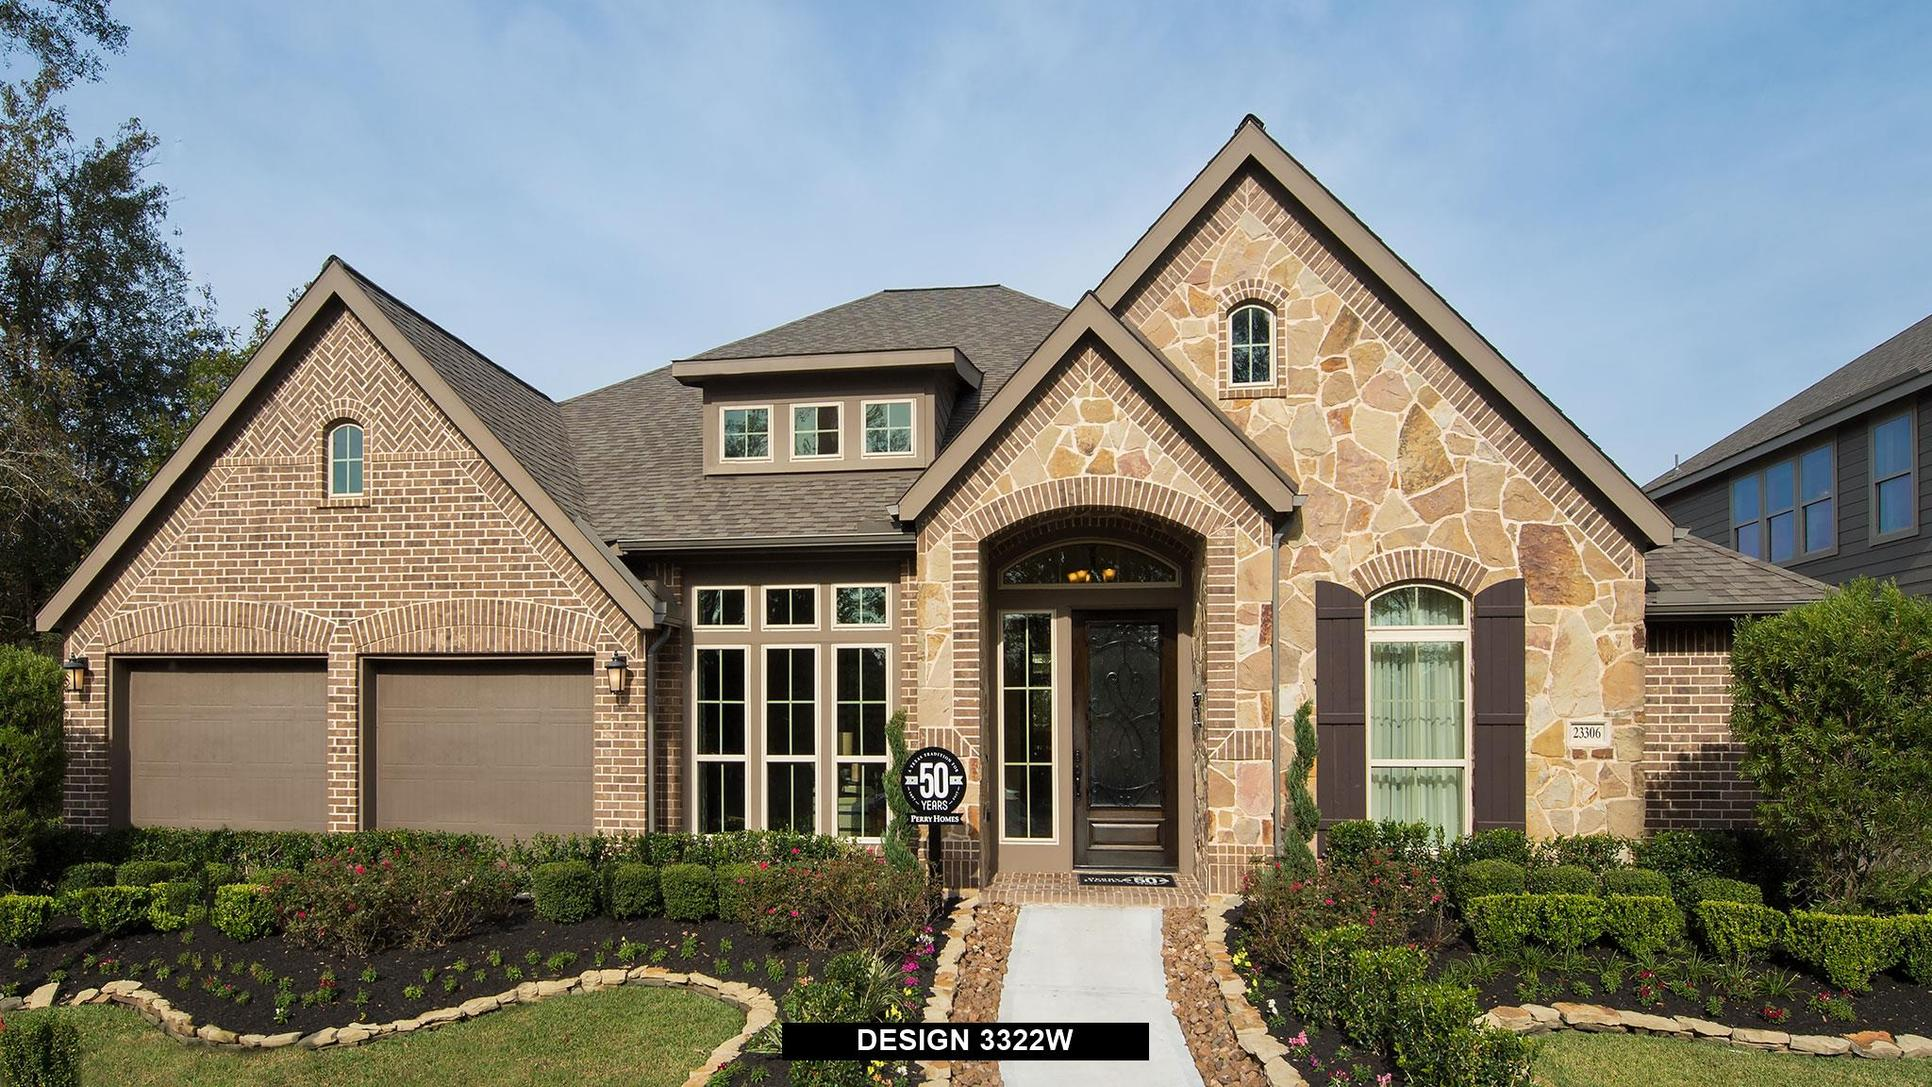 Plan 3322W:Representative photo.  Features and specifications may vary by community.